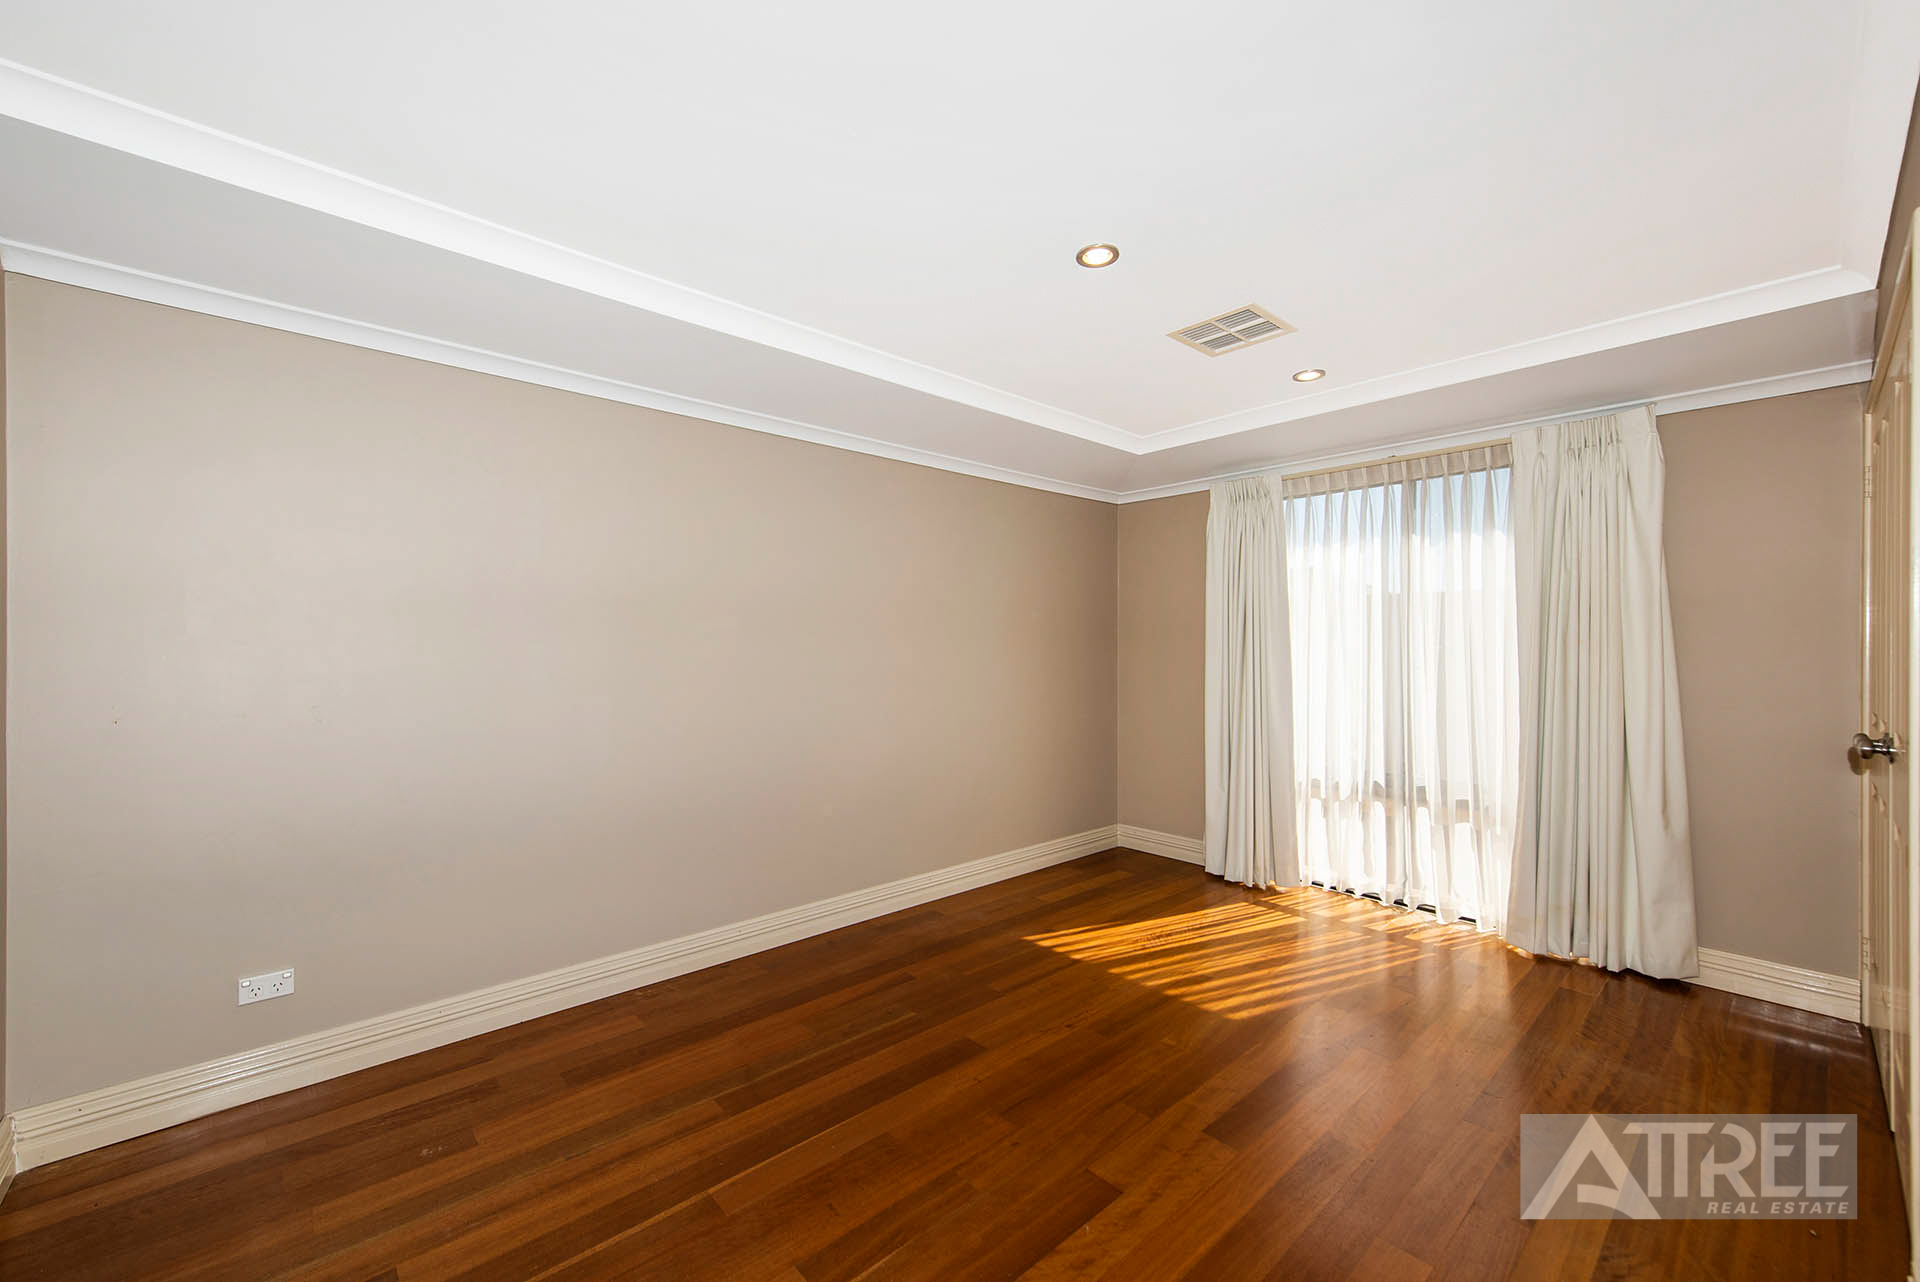 Property for sale in SOUTHERN RIVER, 102 Furley Road : Attree Real Estate